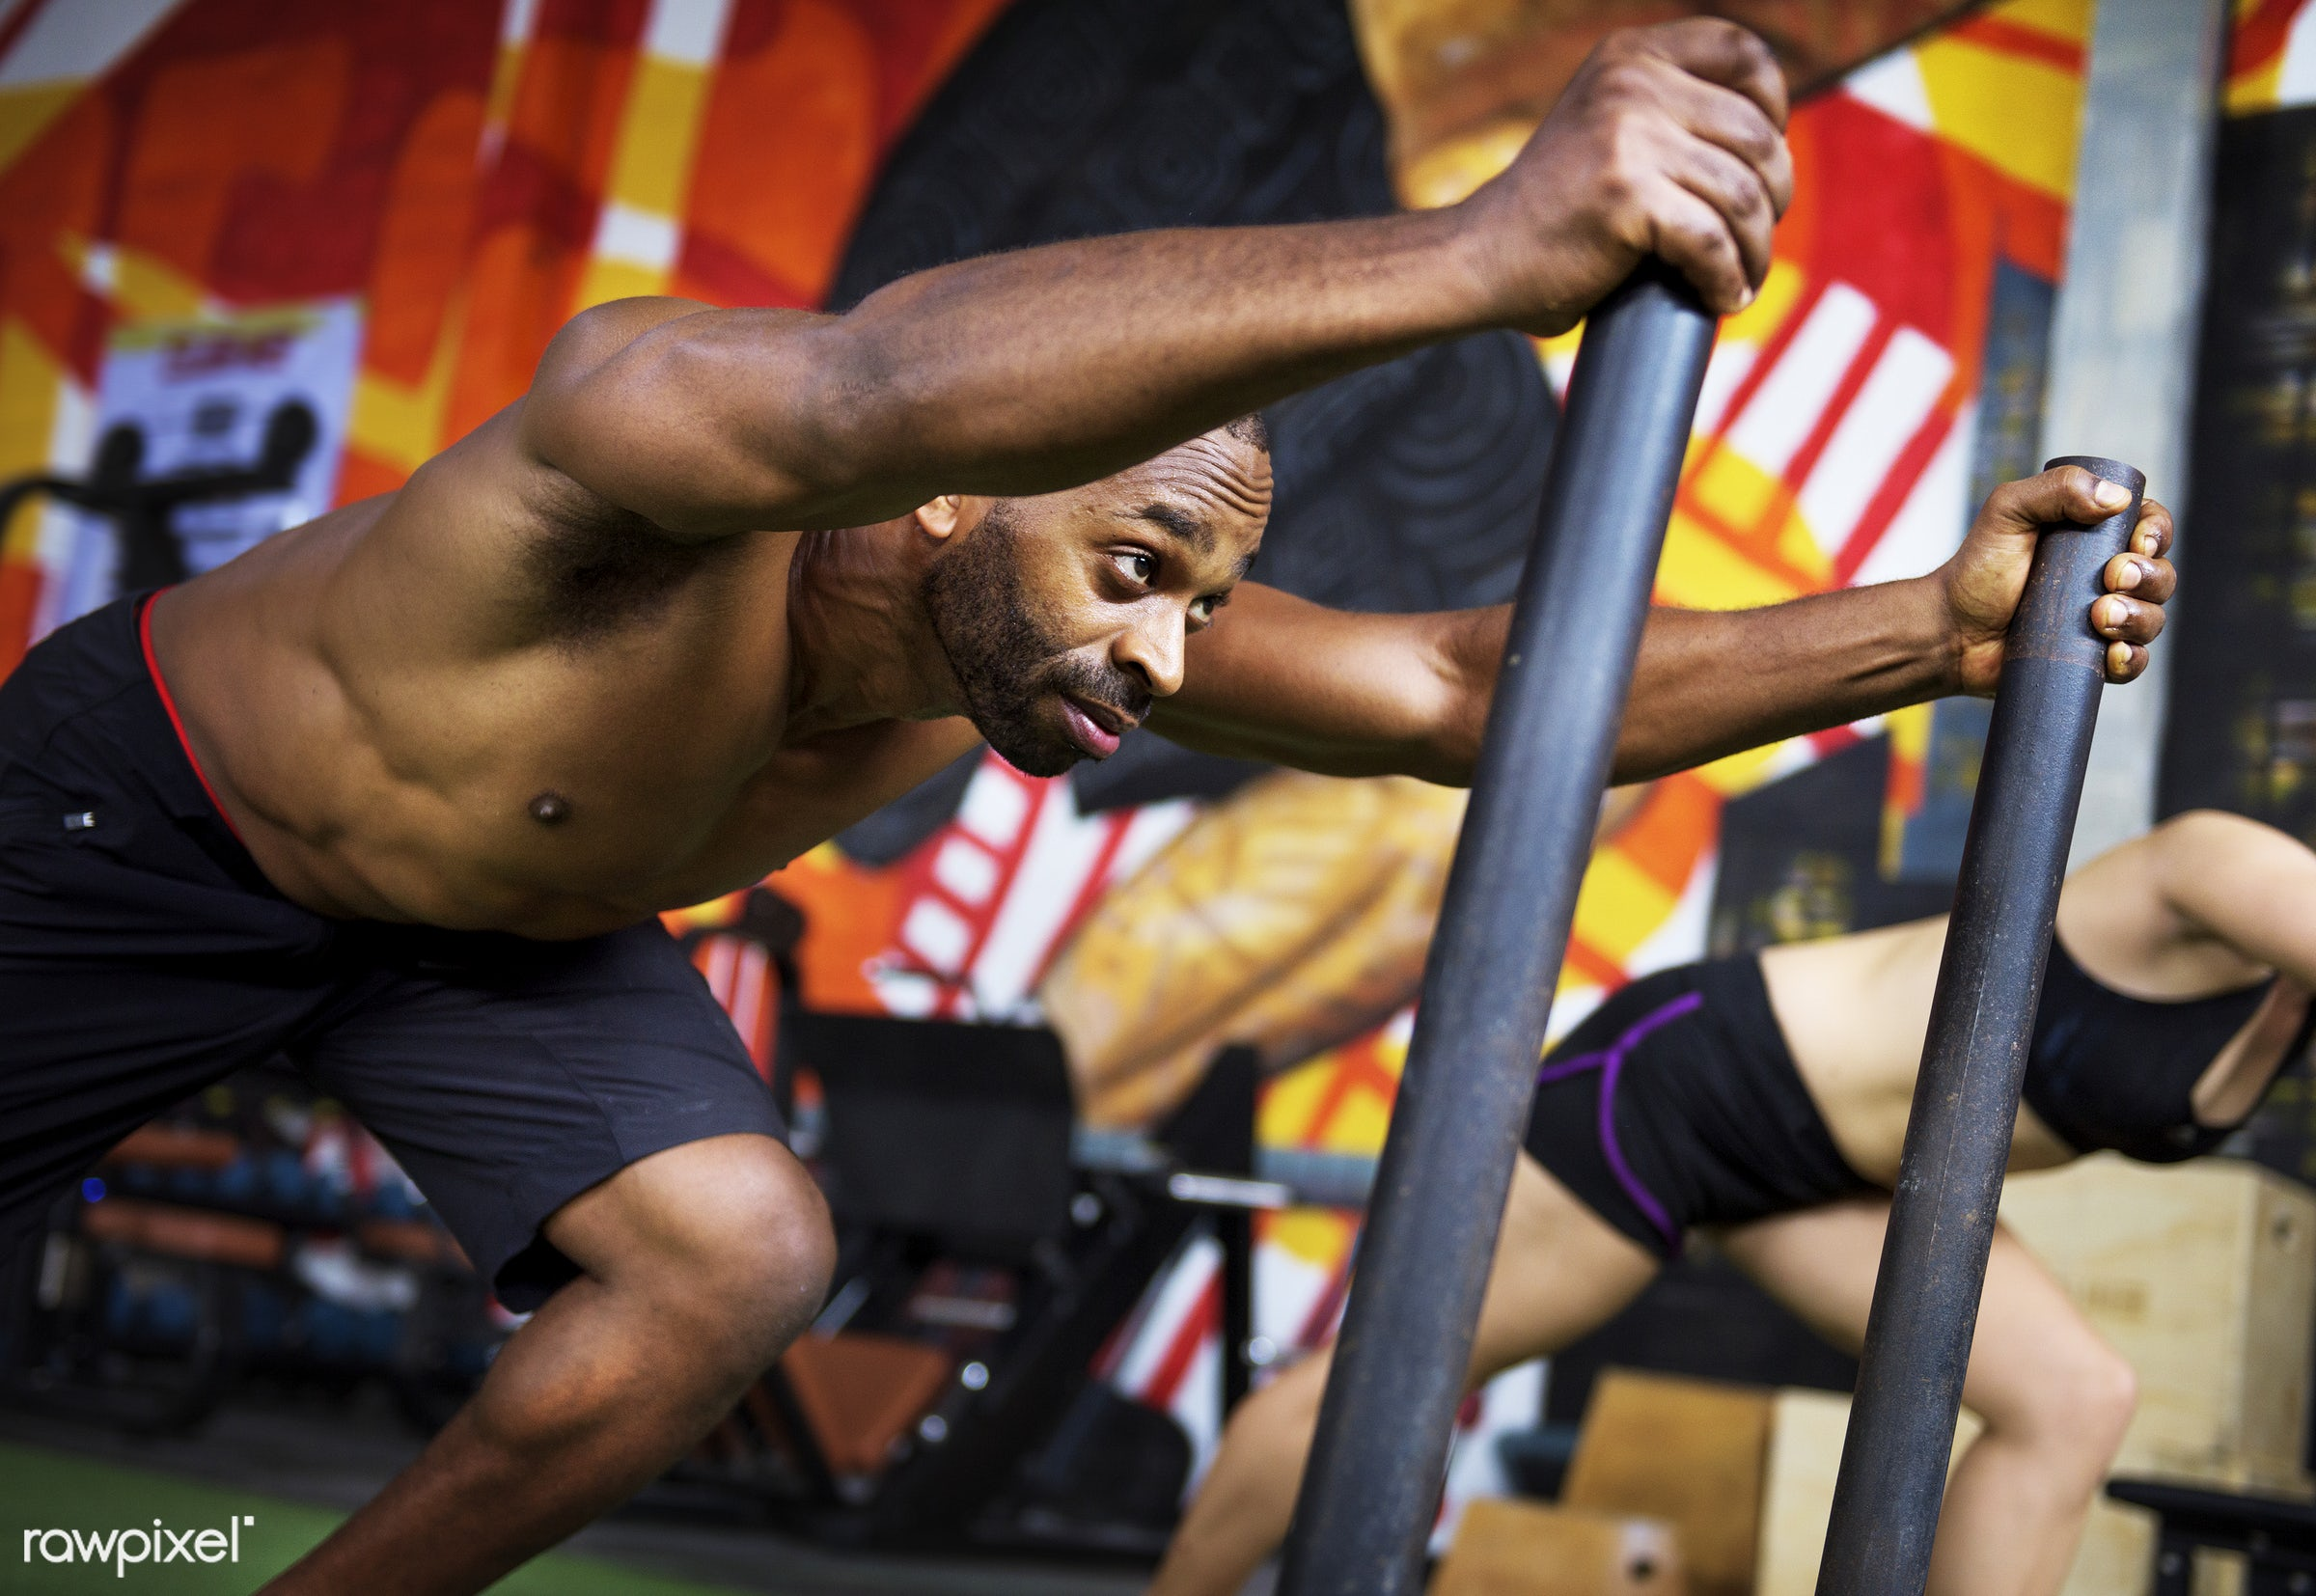 Crossfit group at the gym - active, activity, african descent, athlete, athletic, attractive, body, buff, concentration,...